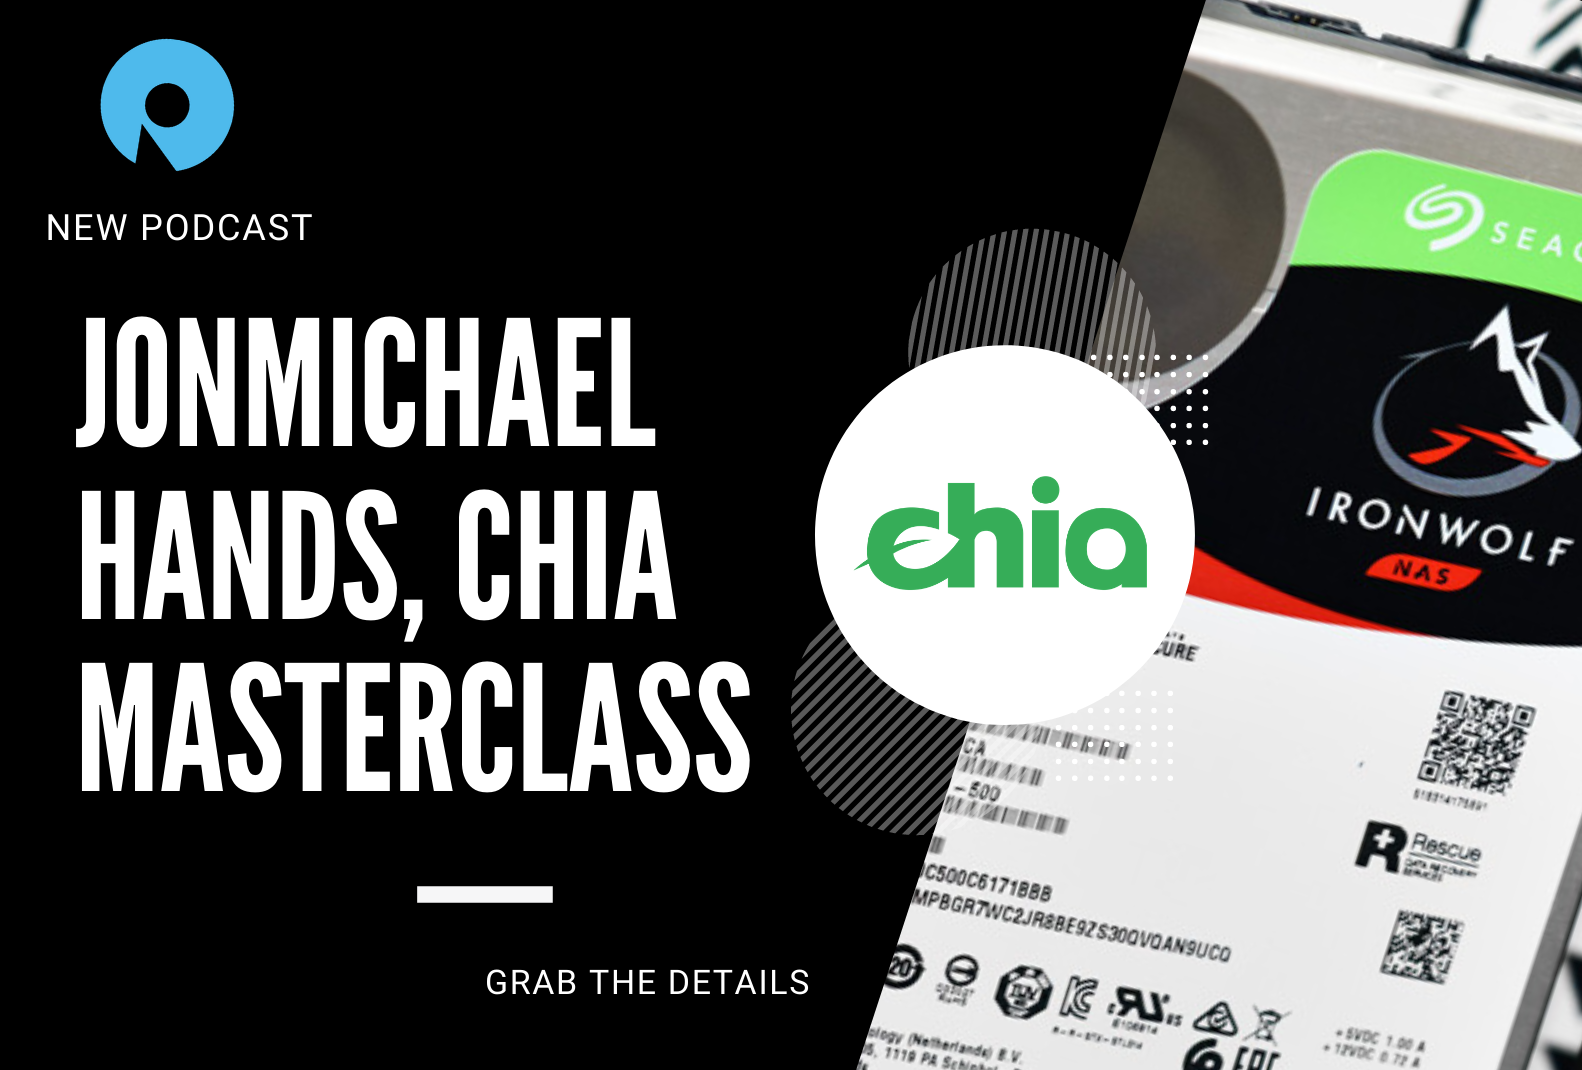 Jonmichael Hands left what most consider to be a very good job at Intel, taking on the role of head of storage at Chia. Chia is a cryptocurrency that's billed as one of the most green in the world since it leverages proof of space (PoS) rather than proof of w…